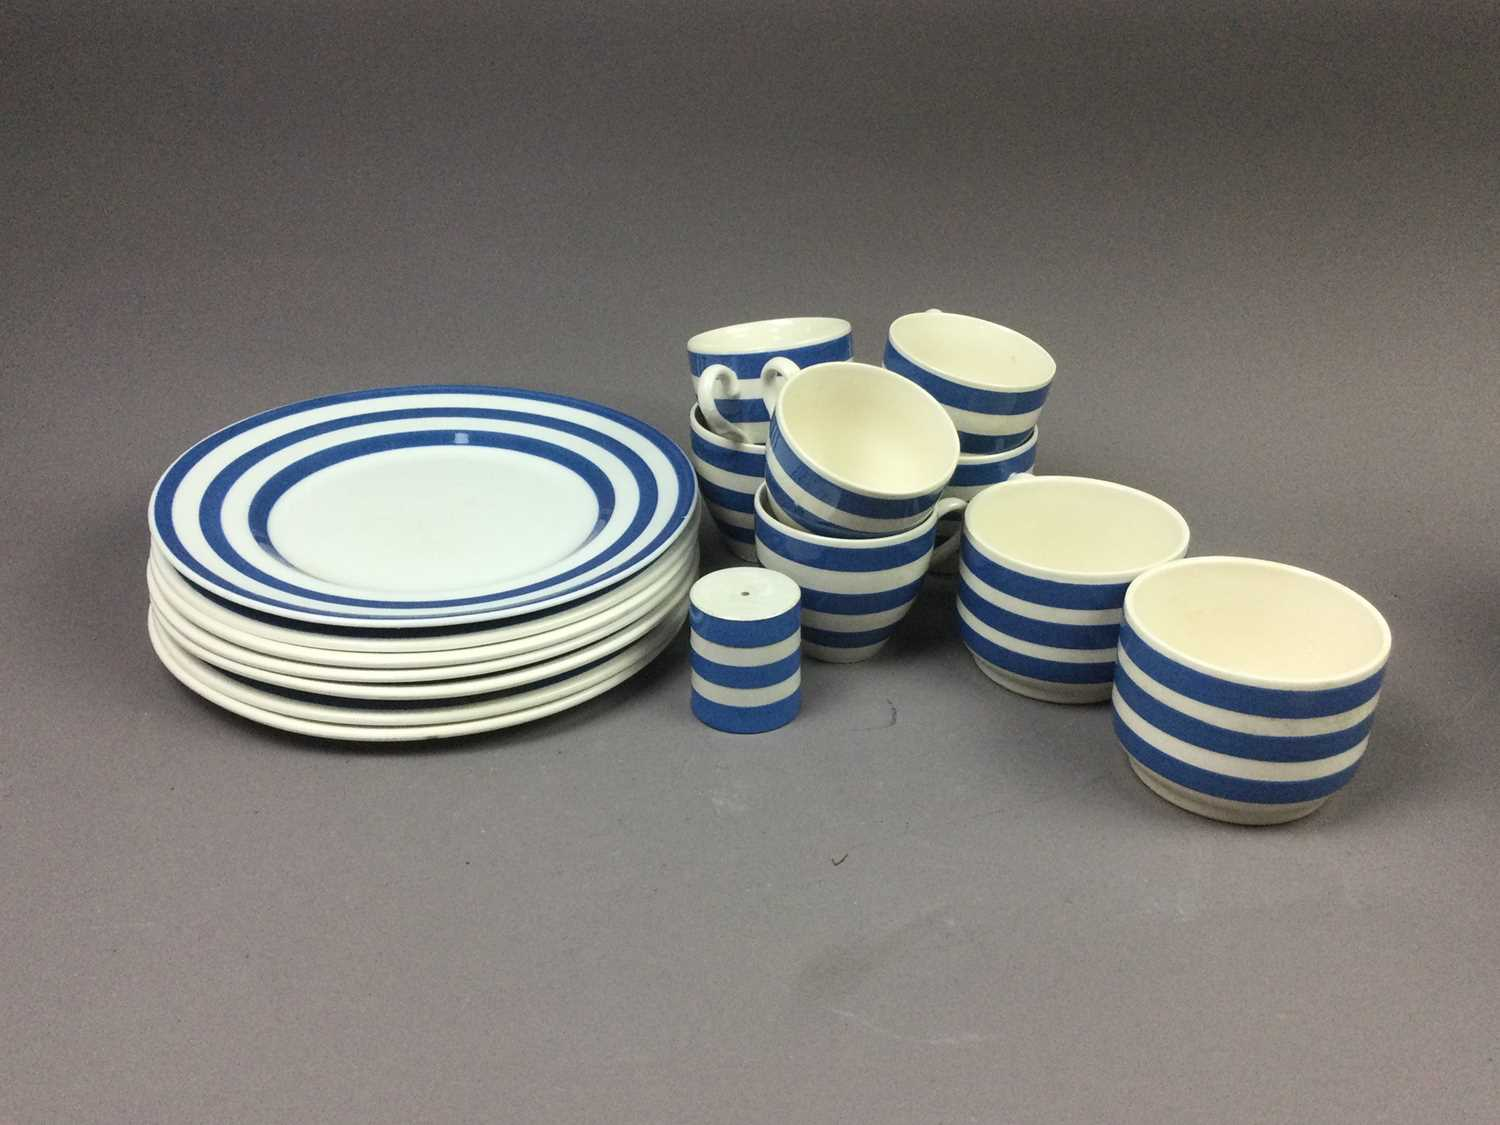 Lot 81 - A CORNISH WARE STYLE BLUE AND WHITE STAFFORDSHIRE BREAKFAST SET